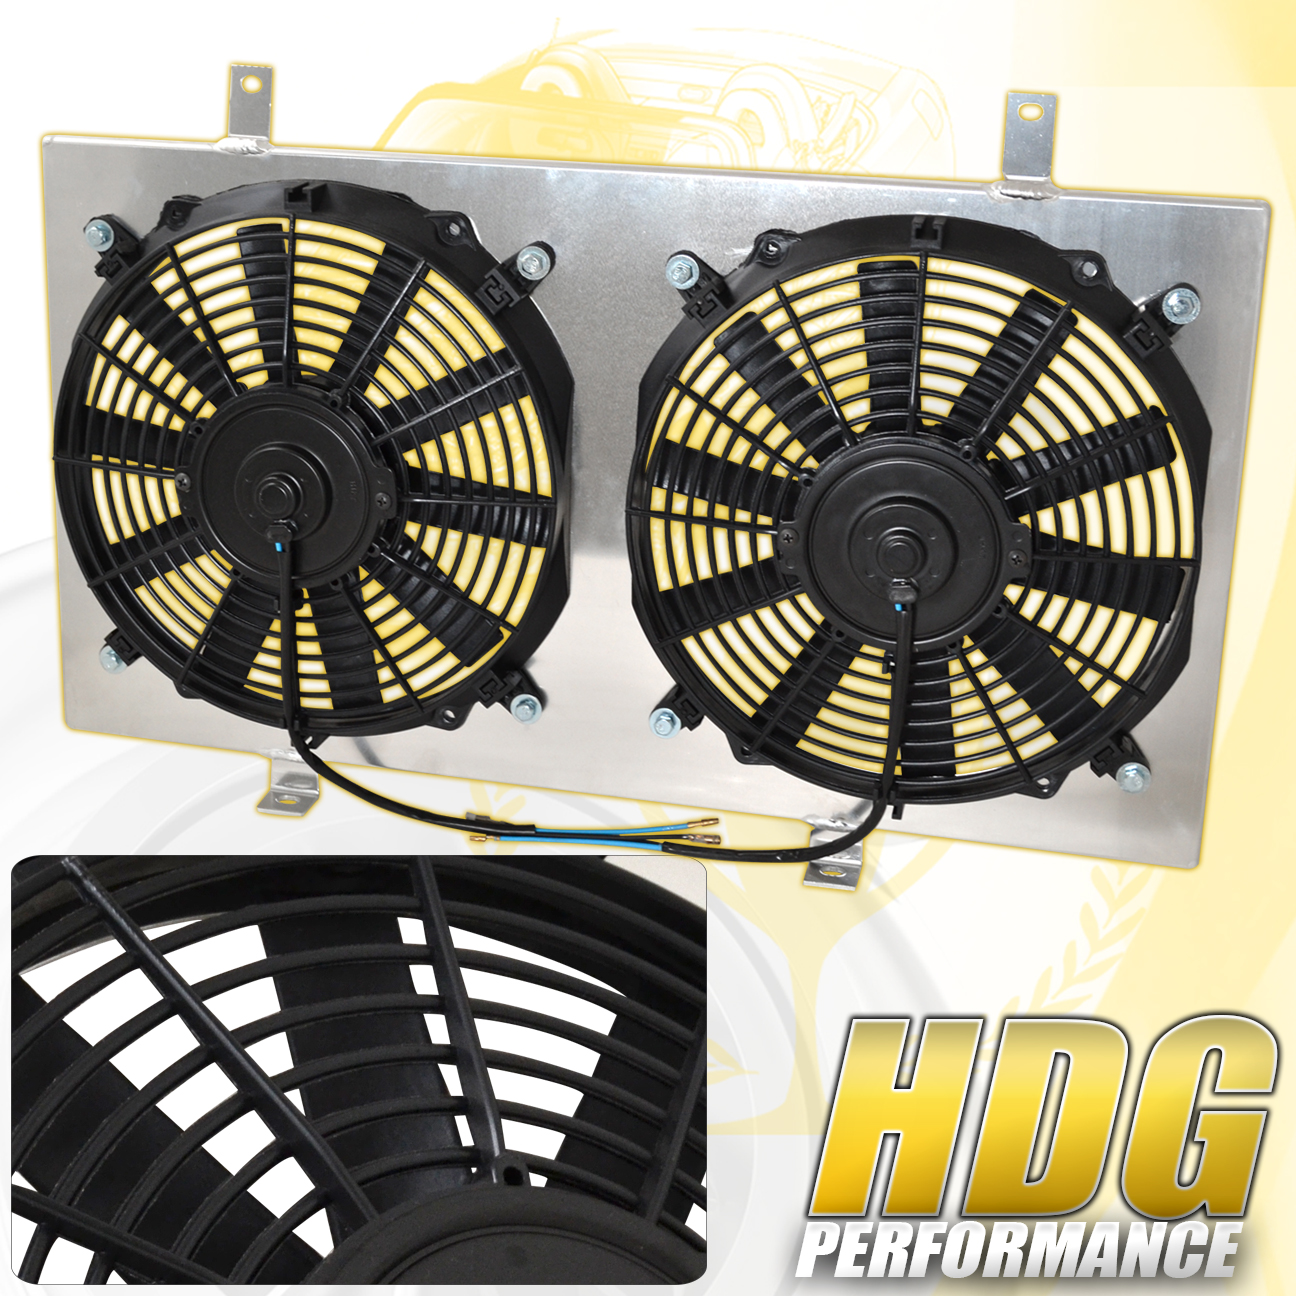 For 89-94 Nissan 240SX S13 CA18 Manual MT Cooling Fan Radiator Shroud Cover  Kit